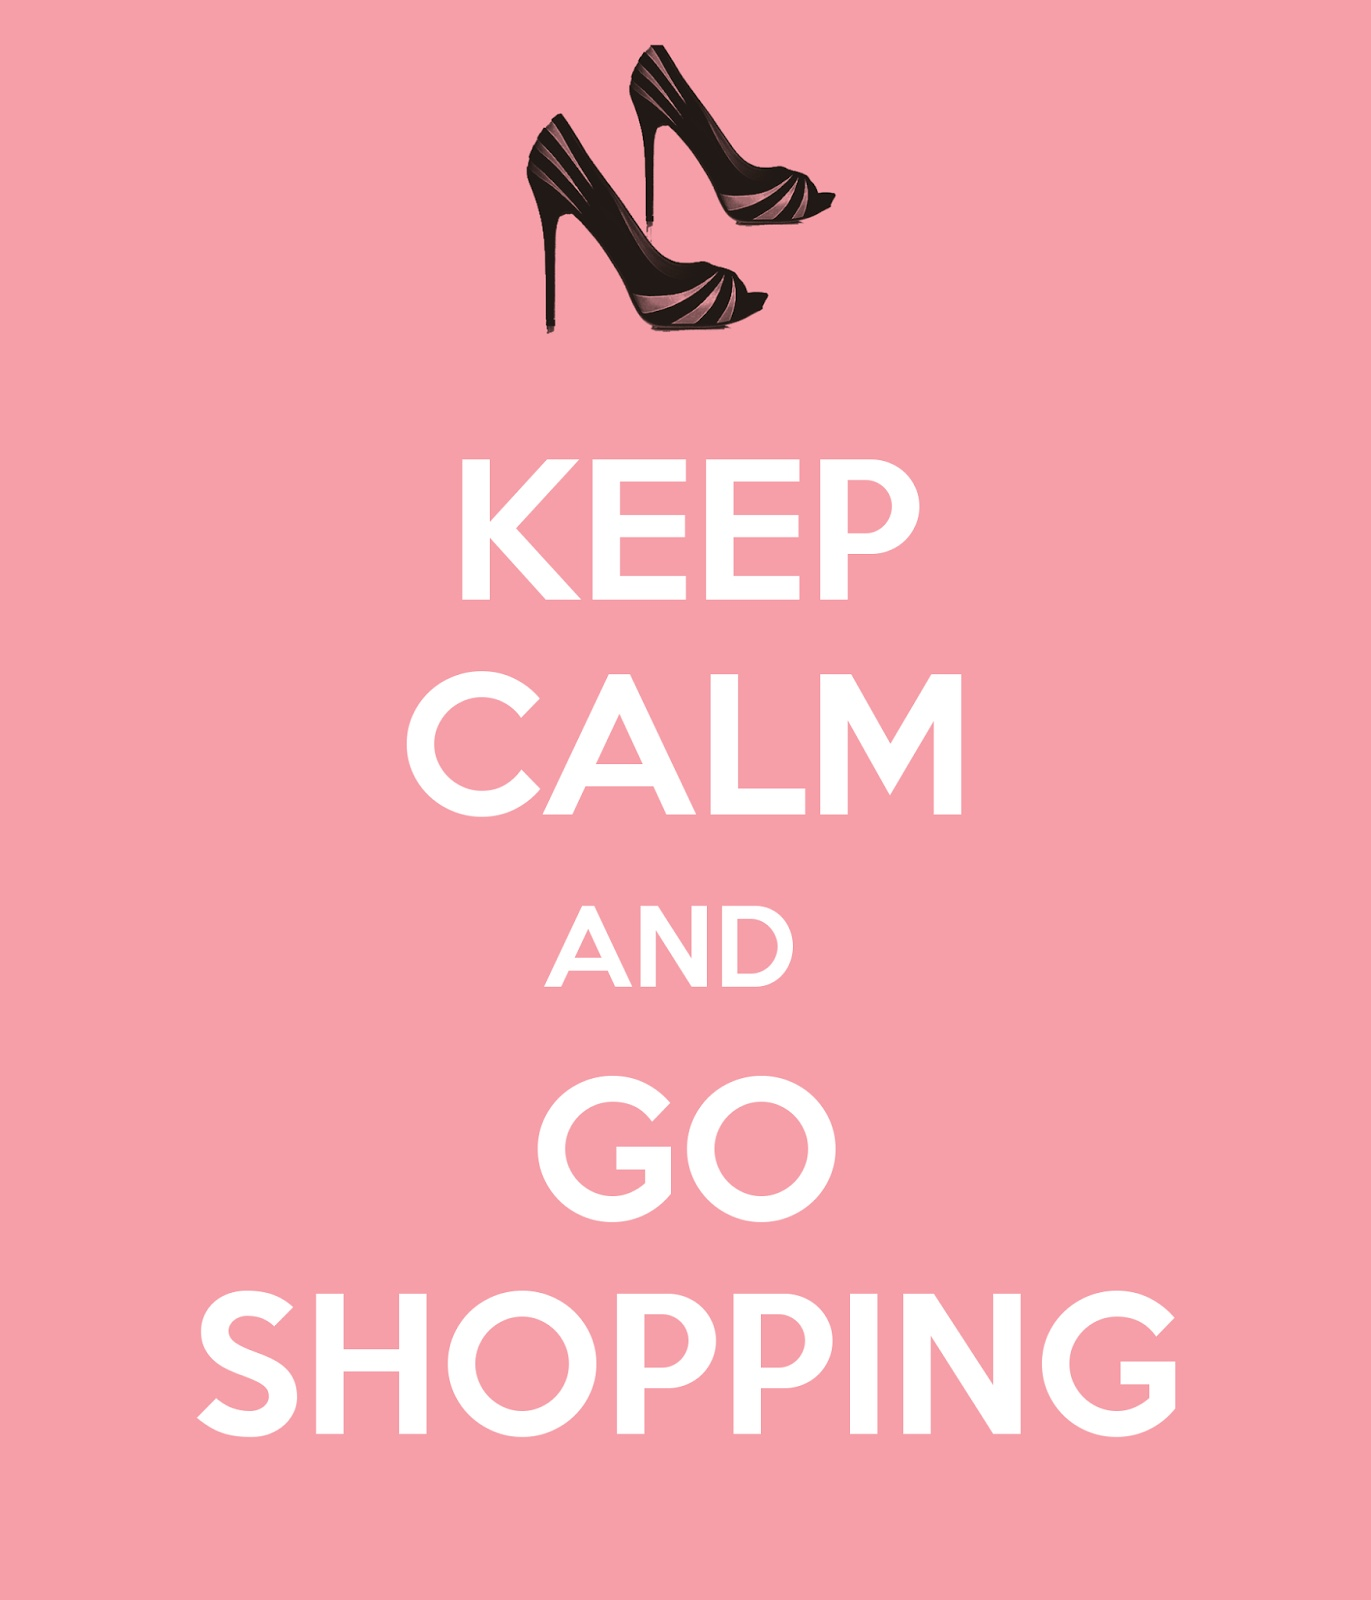 keep-calm-and-go-shopping-693